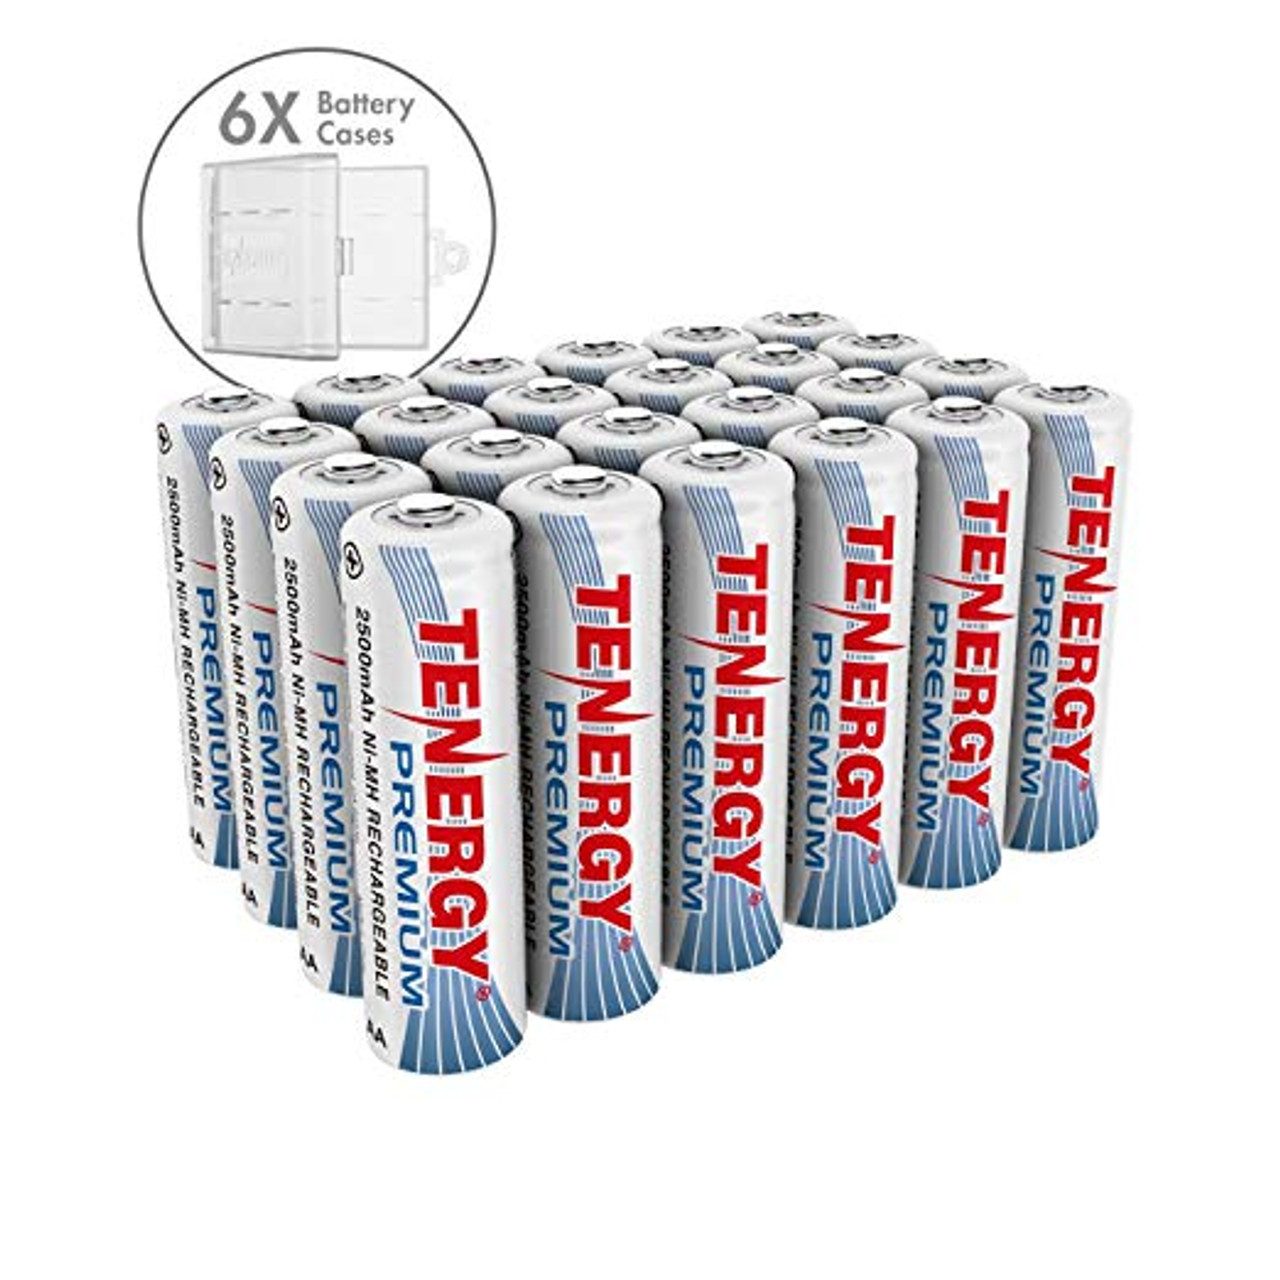 Combo: 24 pcs Tenergy Premium AA 2500mAh NiMH Rechargeable Batteries + 6 AA Size Holders